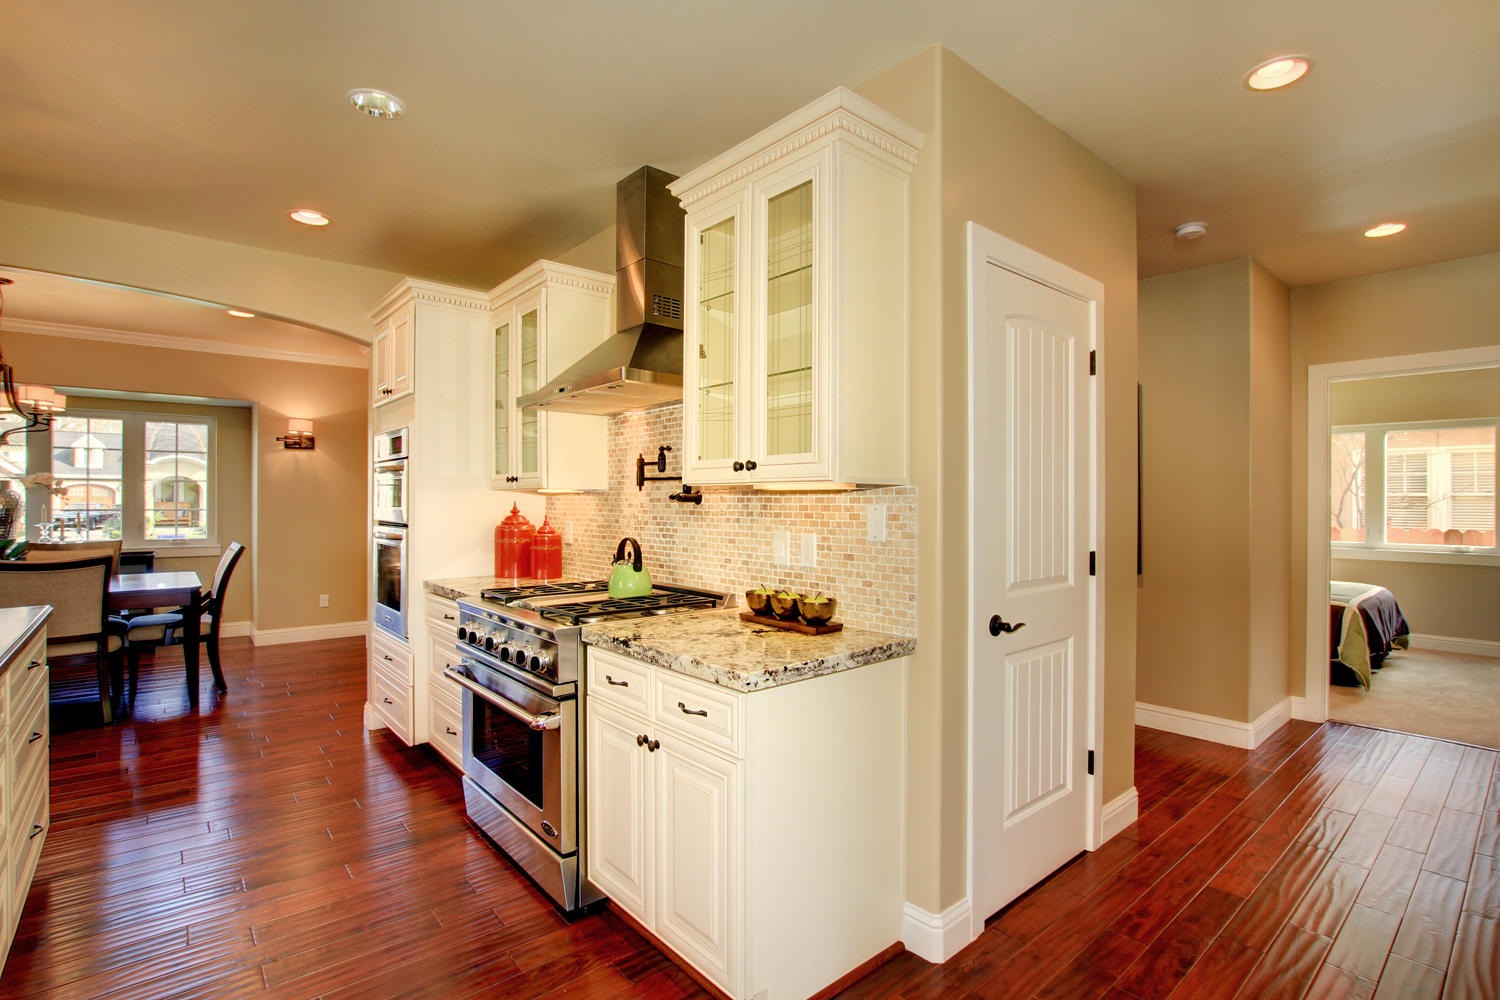 Best Kitchen Gallery: Cabi Ry And Bath New Manufacturer Highlight J K Cabi Ry of J&k Kitchen Cabinets on cal-ite.com